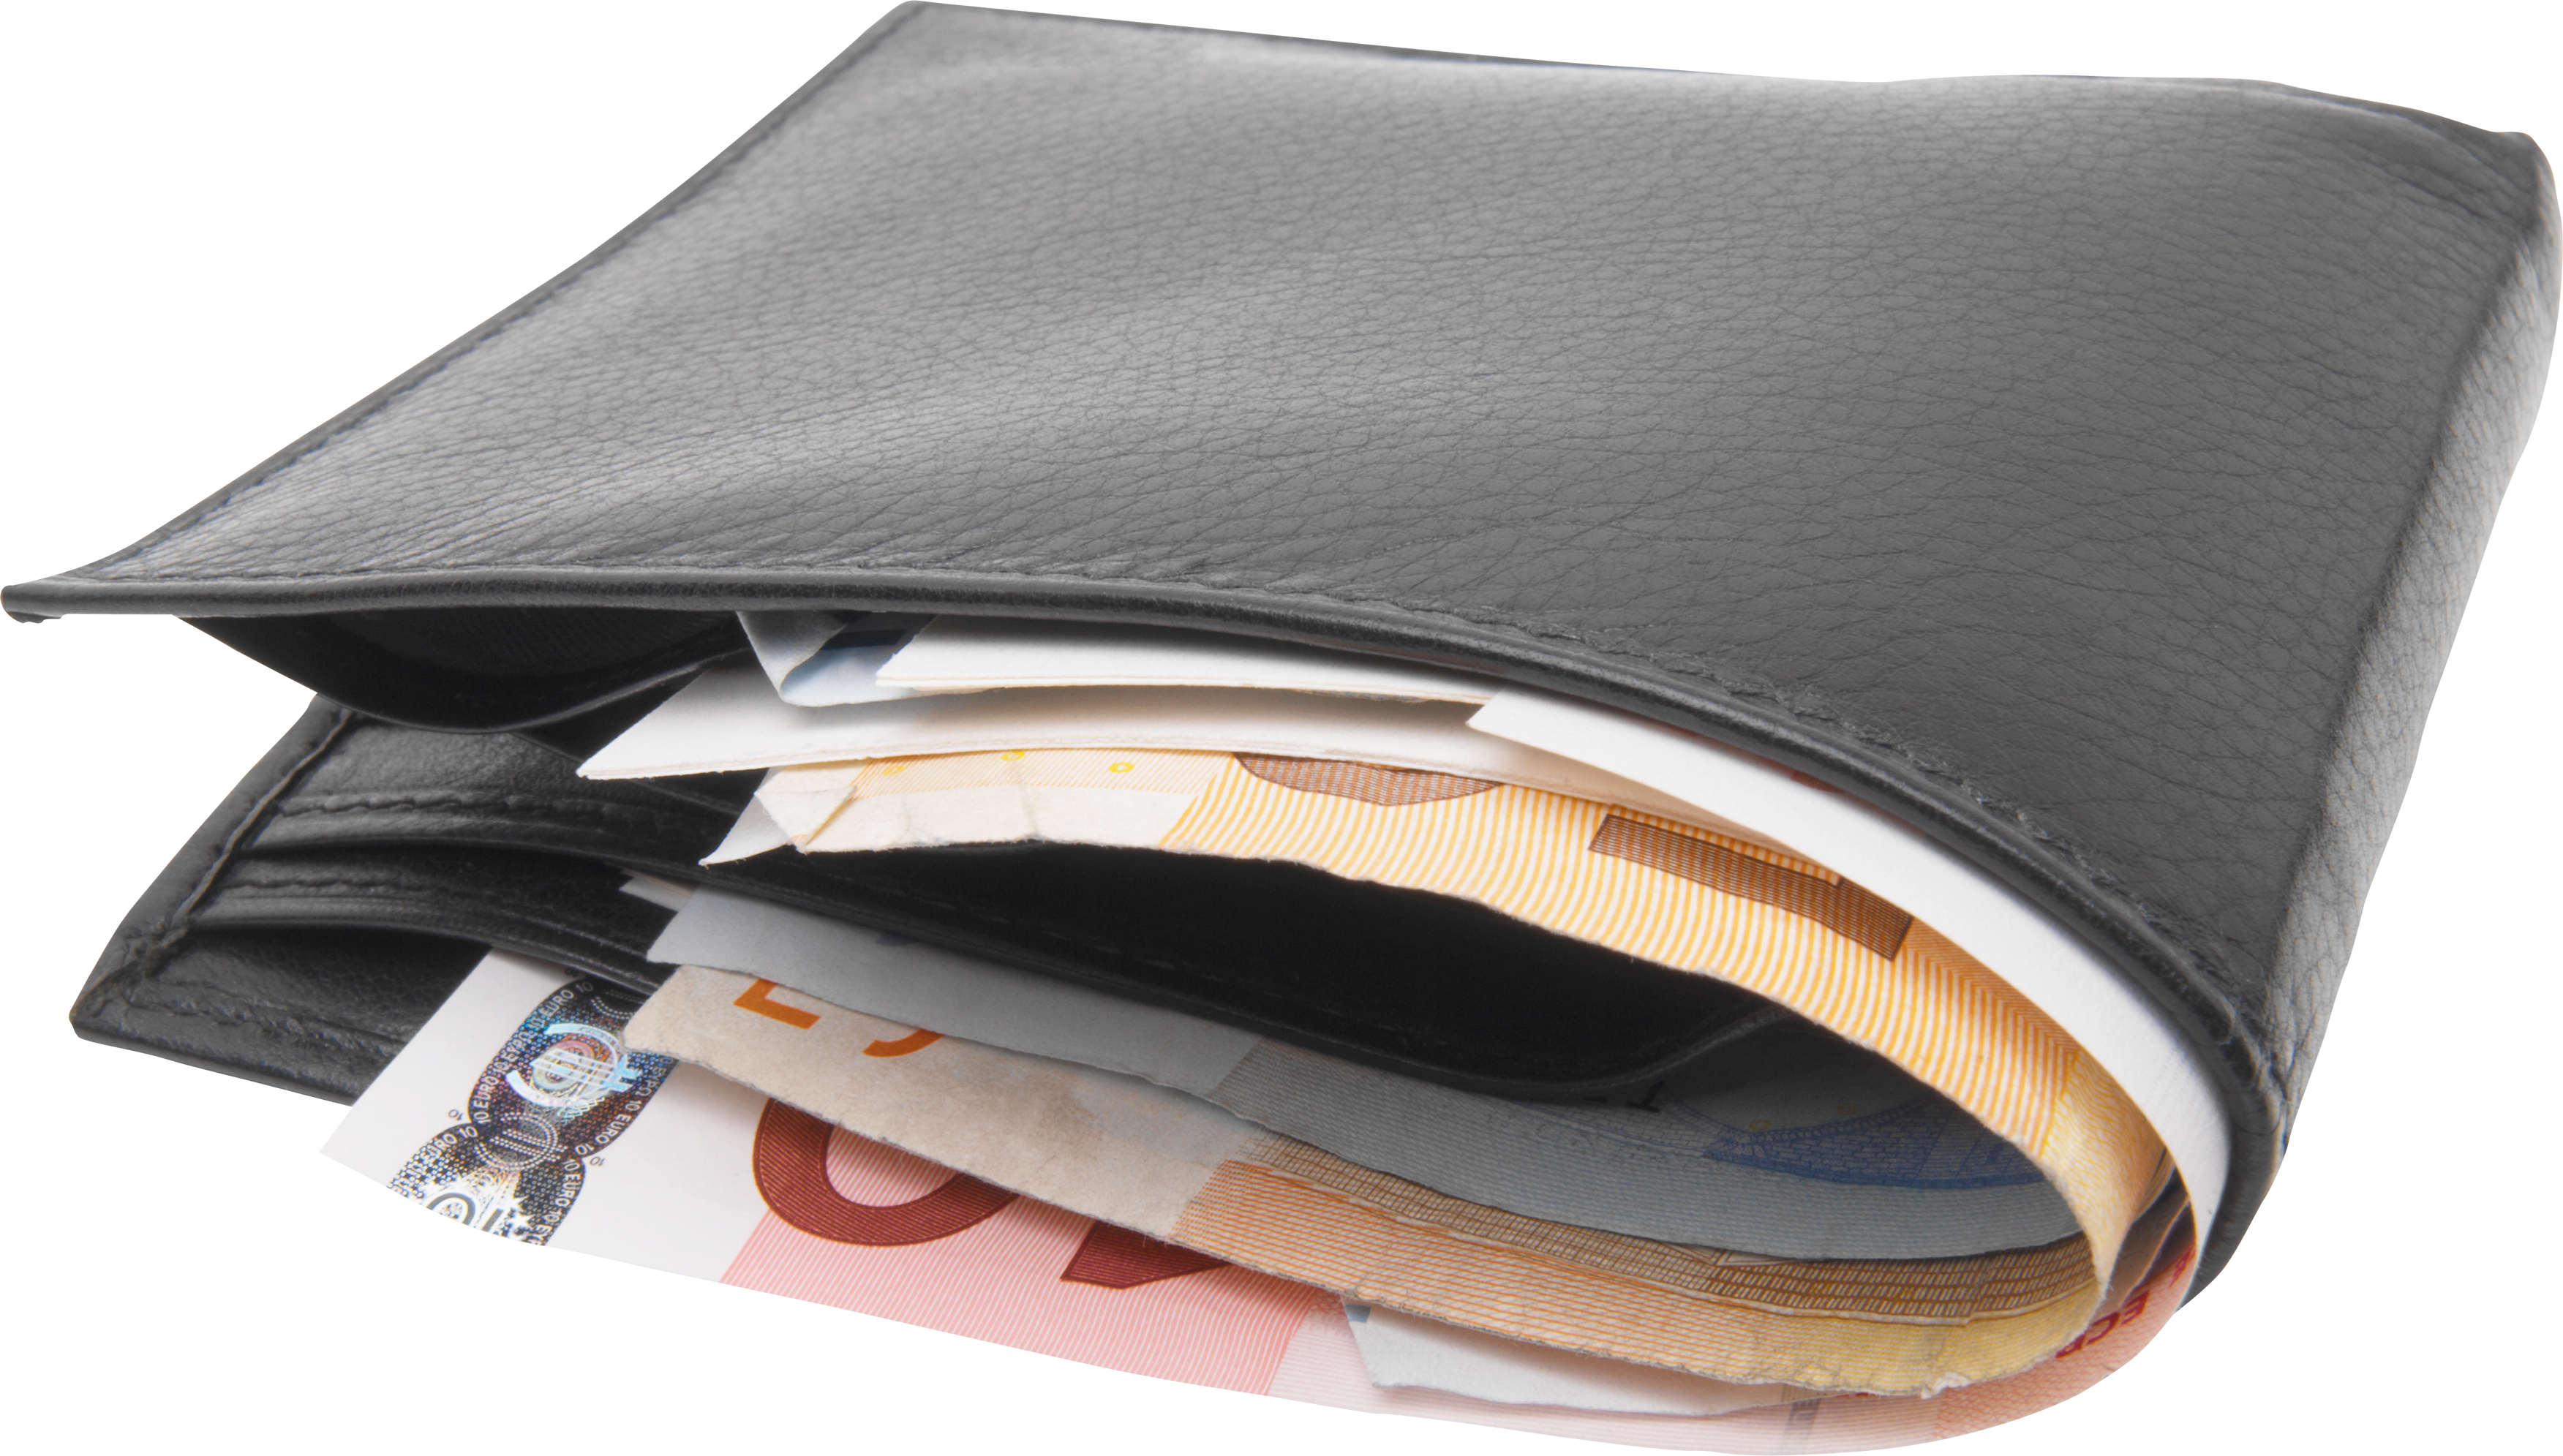 Cash wallet png. With money image